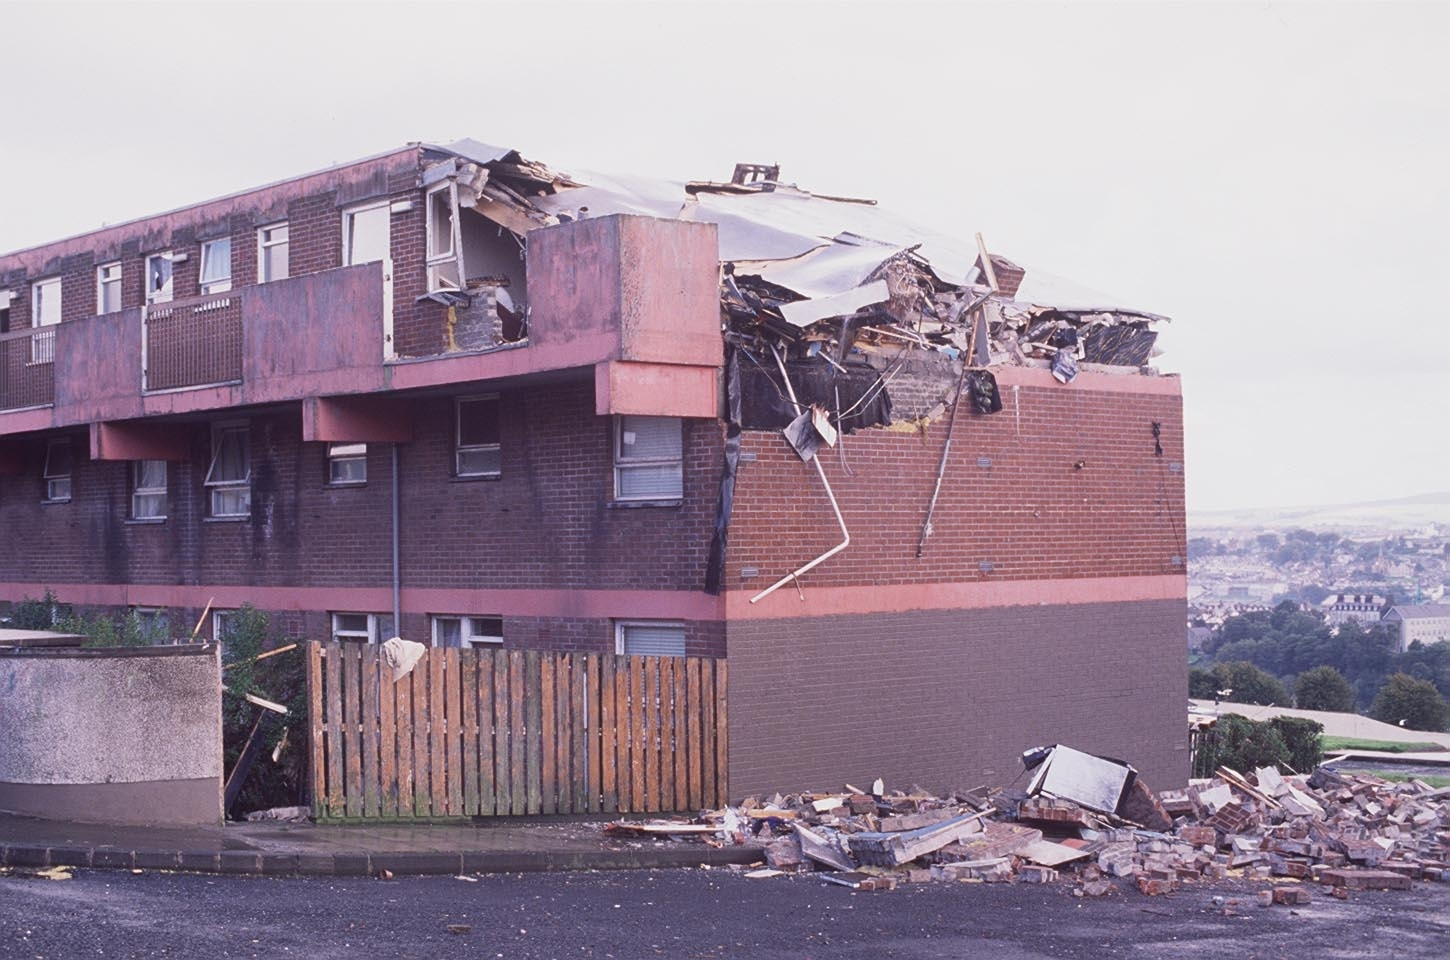 The aftermath of the Good Neighbours bomb in Derry in August 1988